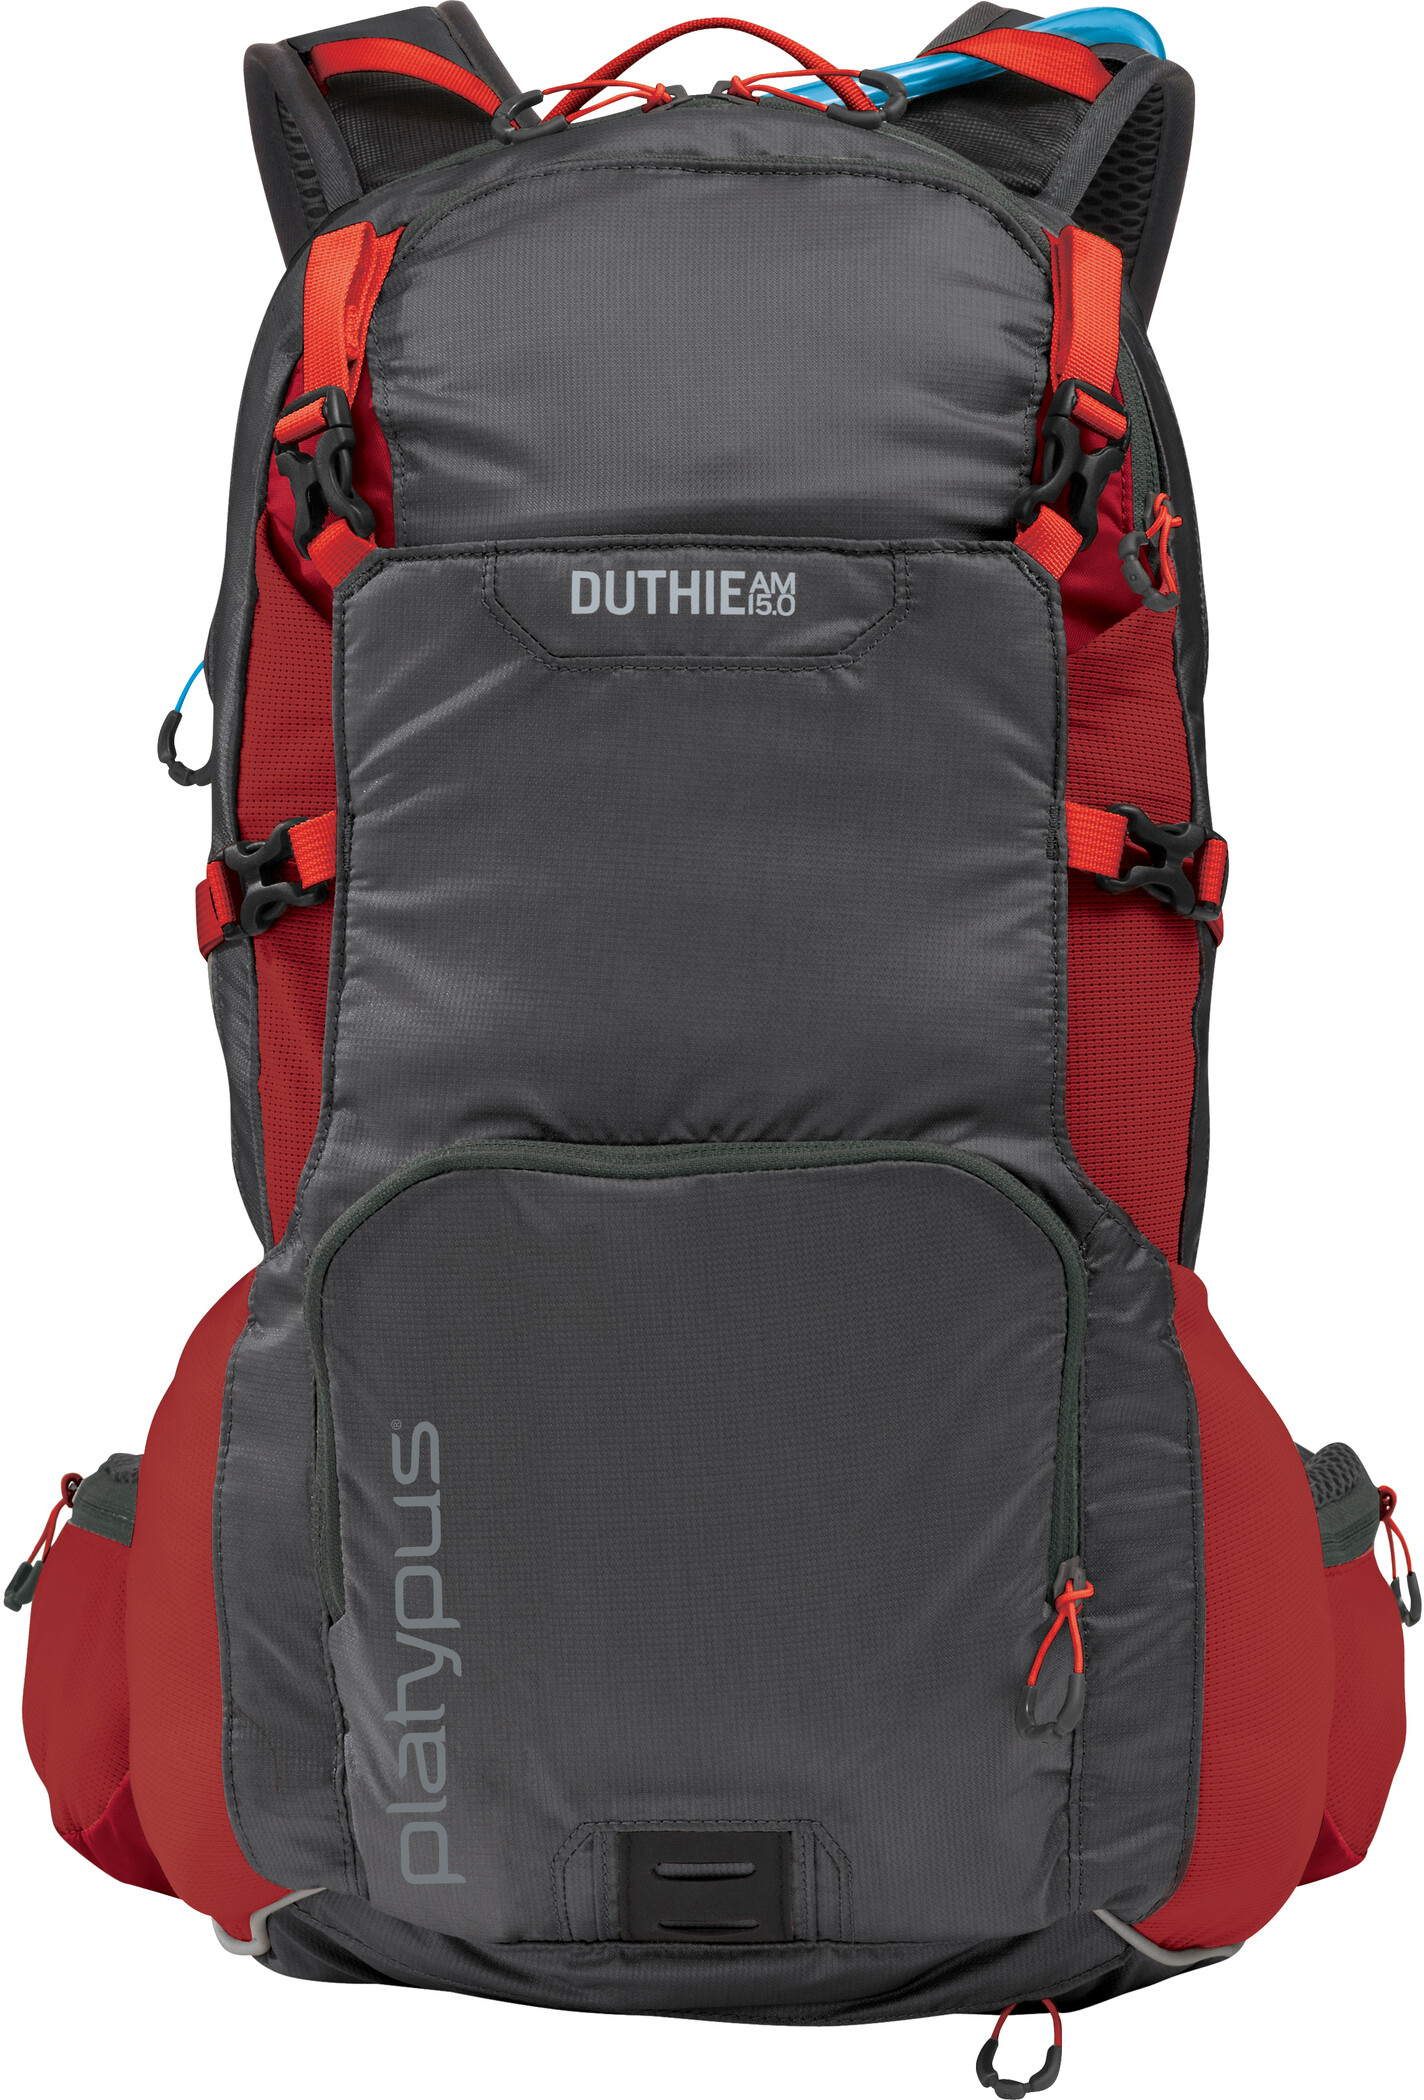 Platypus Duthie 15 Rygsæk, red alloy (2019) | Travel bags